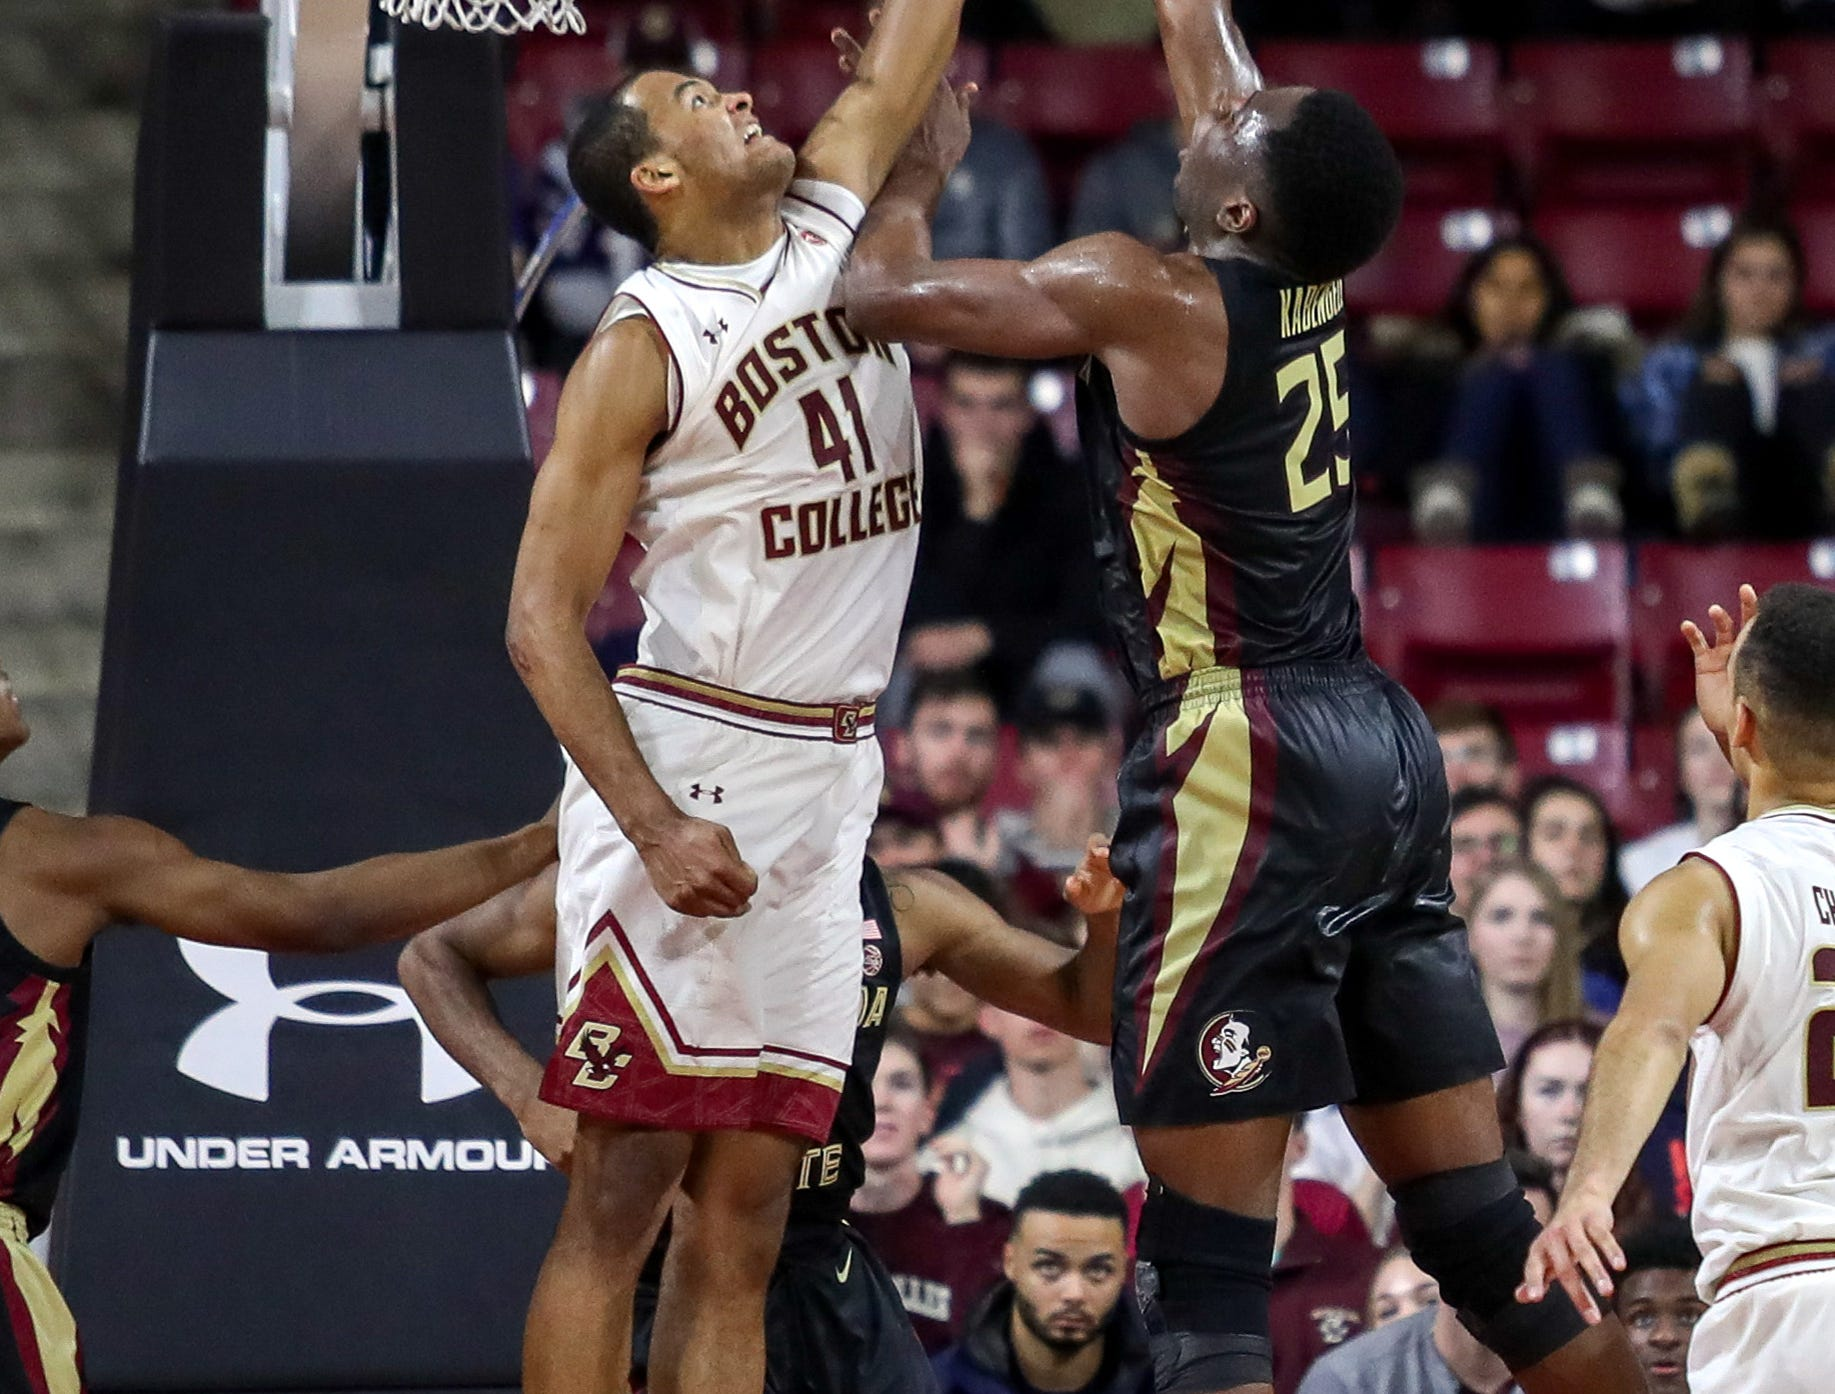 Jan 20, 2019; Chestnut Hill, MA, USA; Boston College Eagles forward Steffon Mitchell (41) blocks Florida State Seminoles forward Mfiondu Kabengele (25) during the second half at Conte Forum. Mandatory Credit: Paul Rutherford-USA TODAY Sports